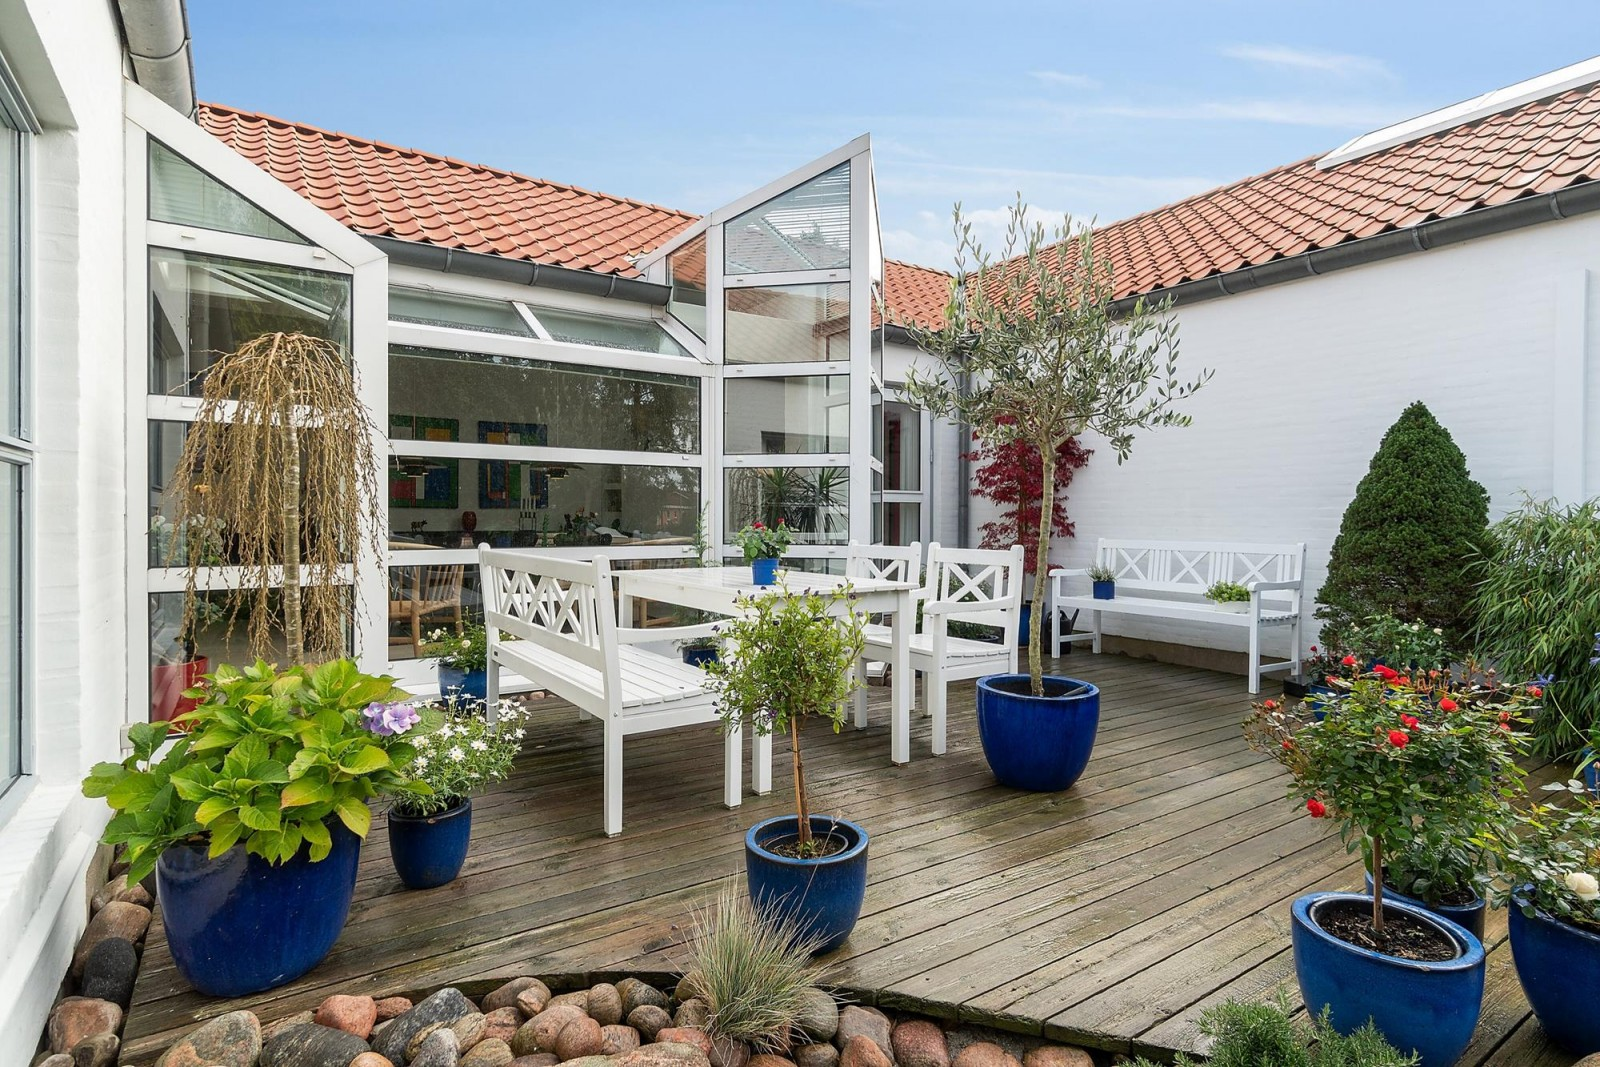 Gårdhave - Patio with wooden decking